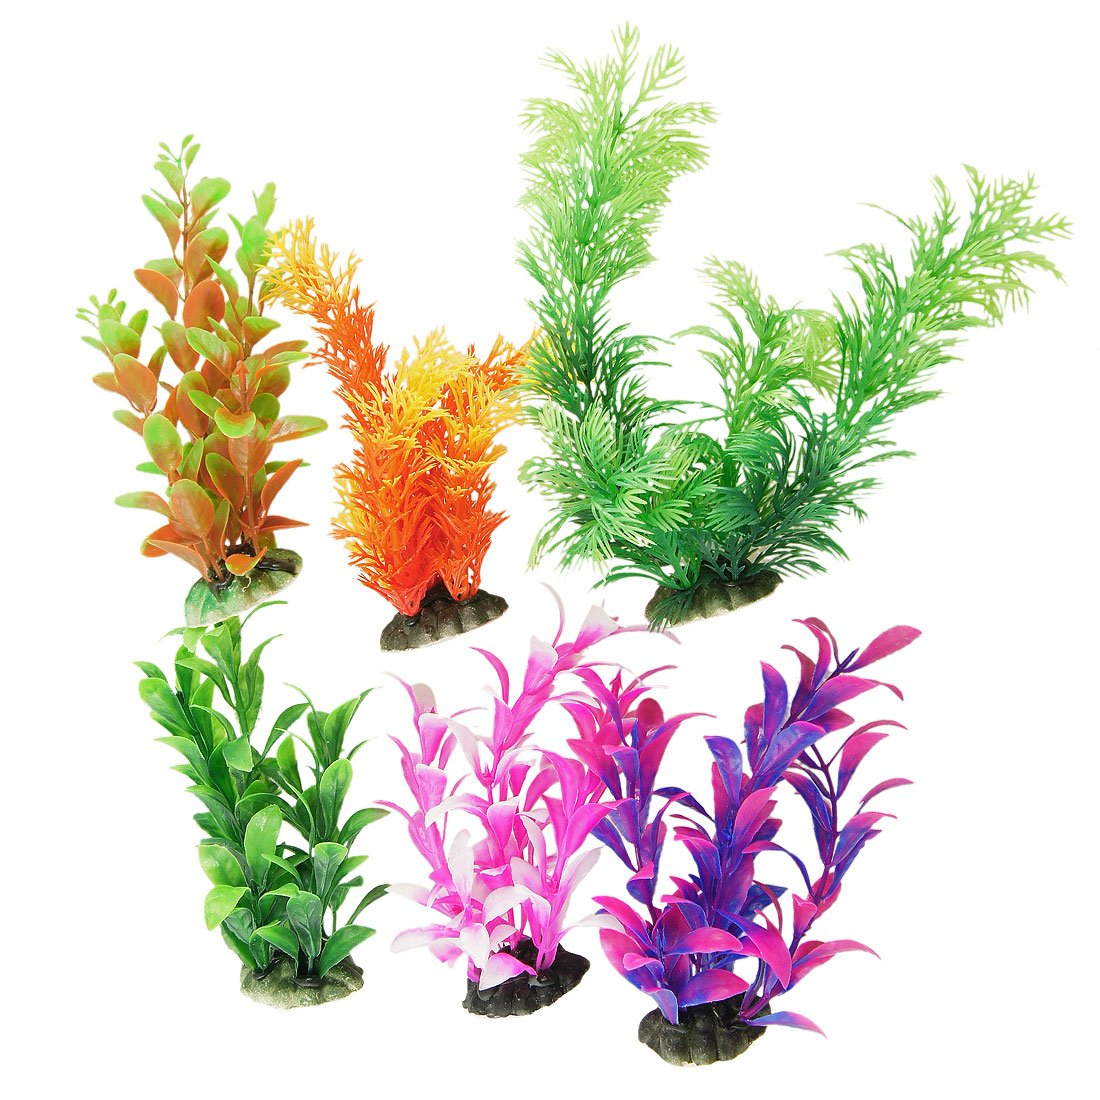 Aquarium Décor: Amazon.com: Coral Ornaments, Aquarium Plants, & Gravel